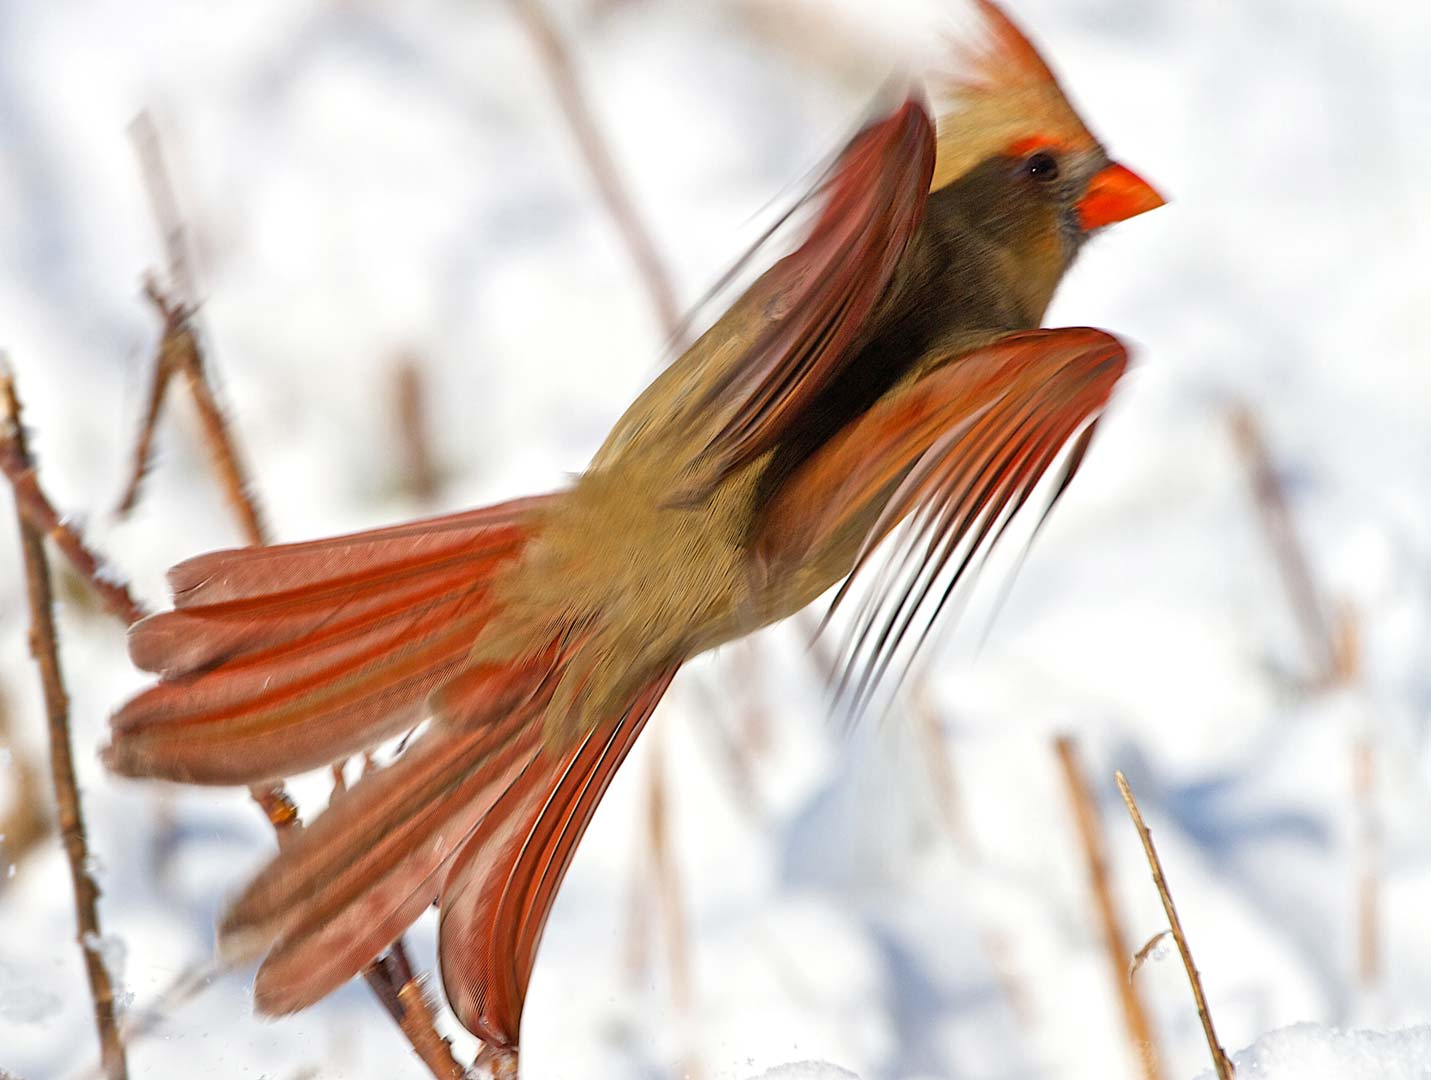 Even a common bird might offer an uncommon sight, like this cardinal in flight. (Dan Ferrin)